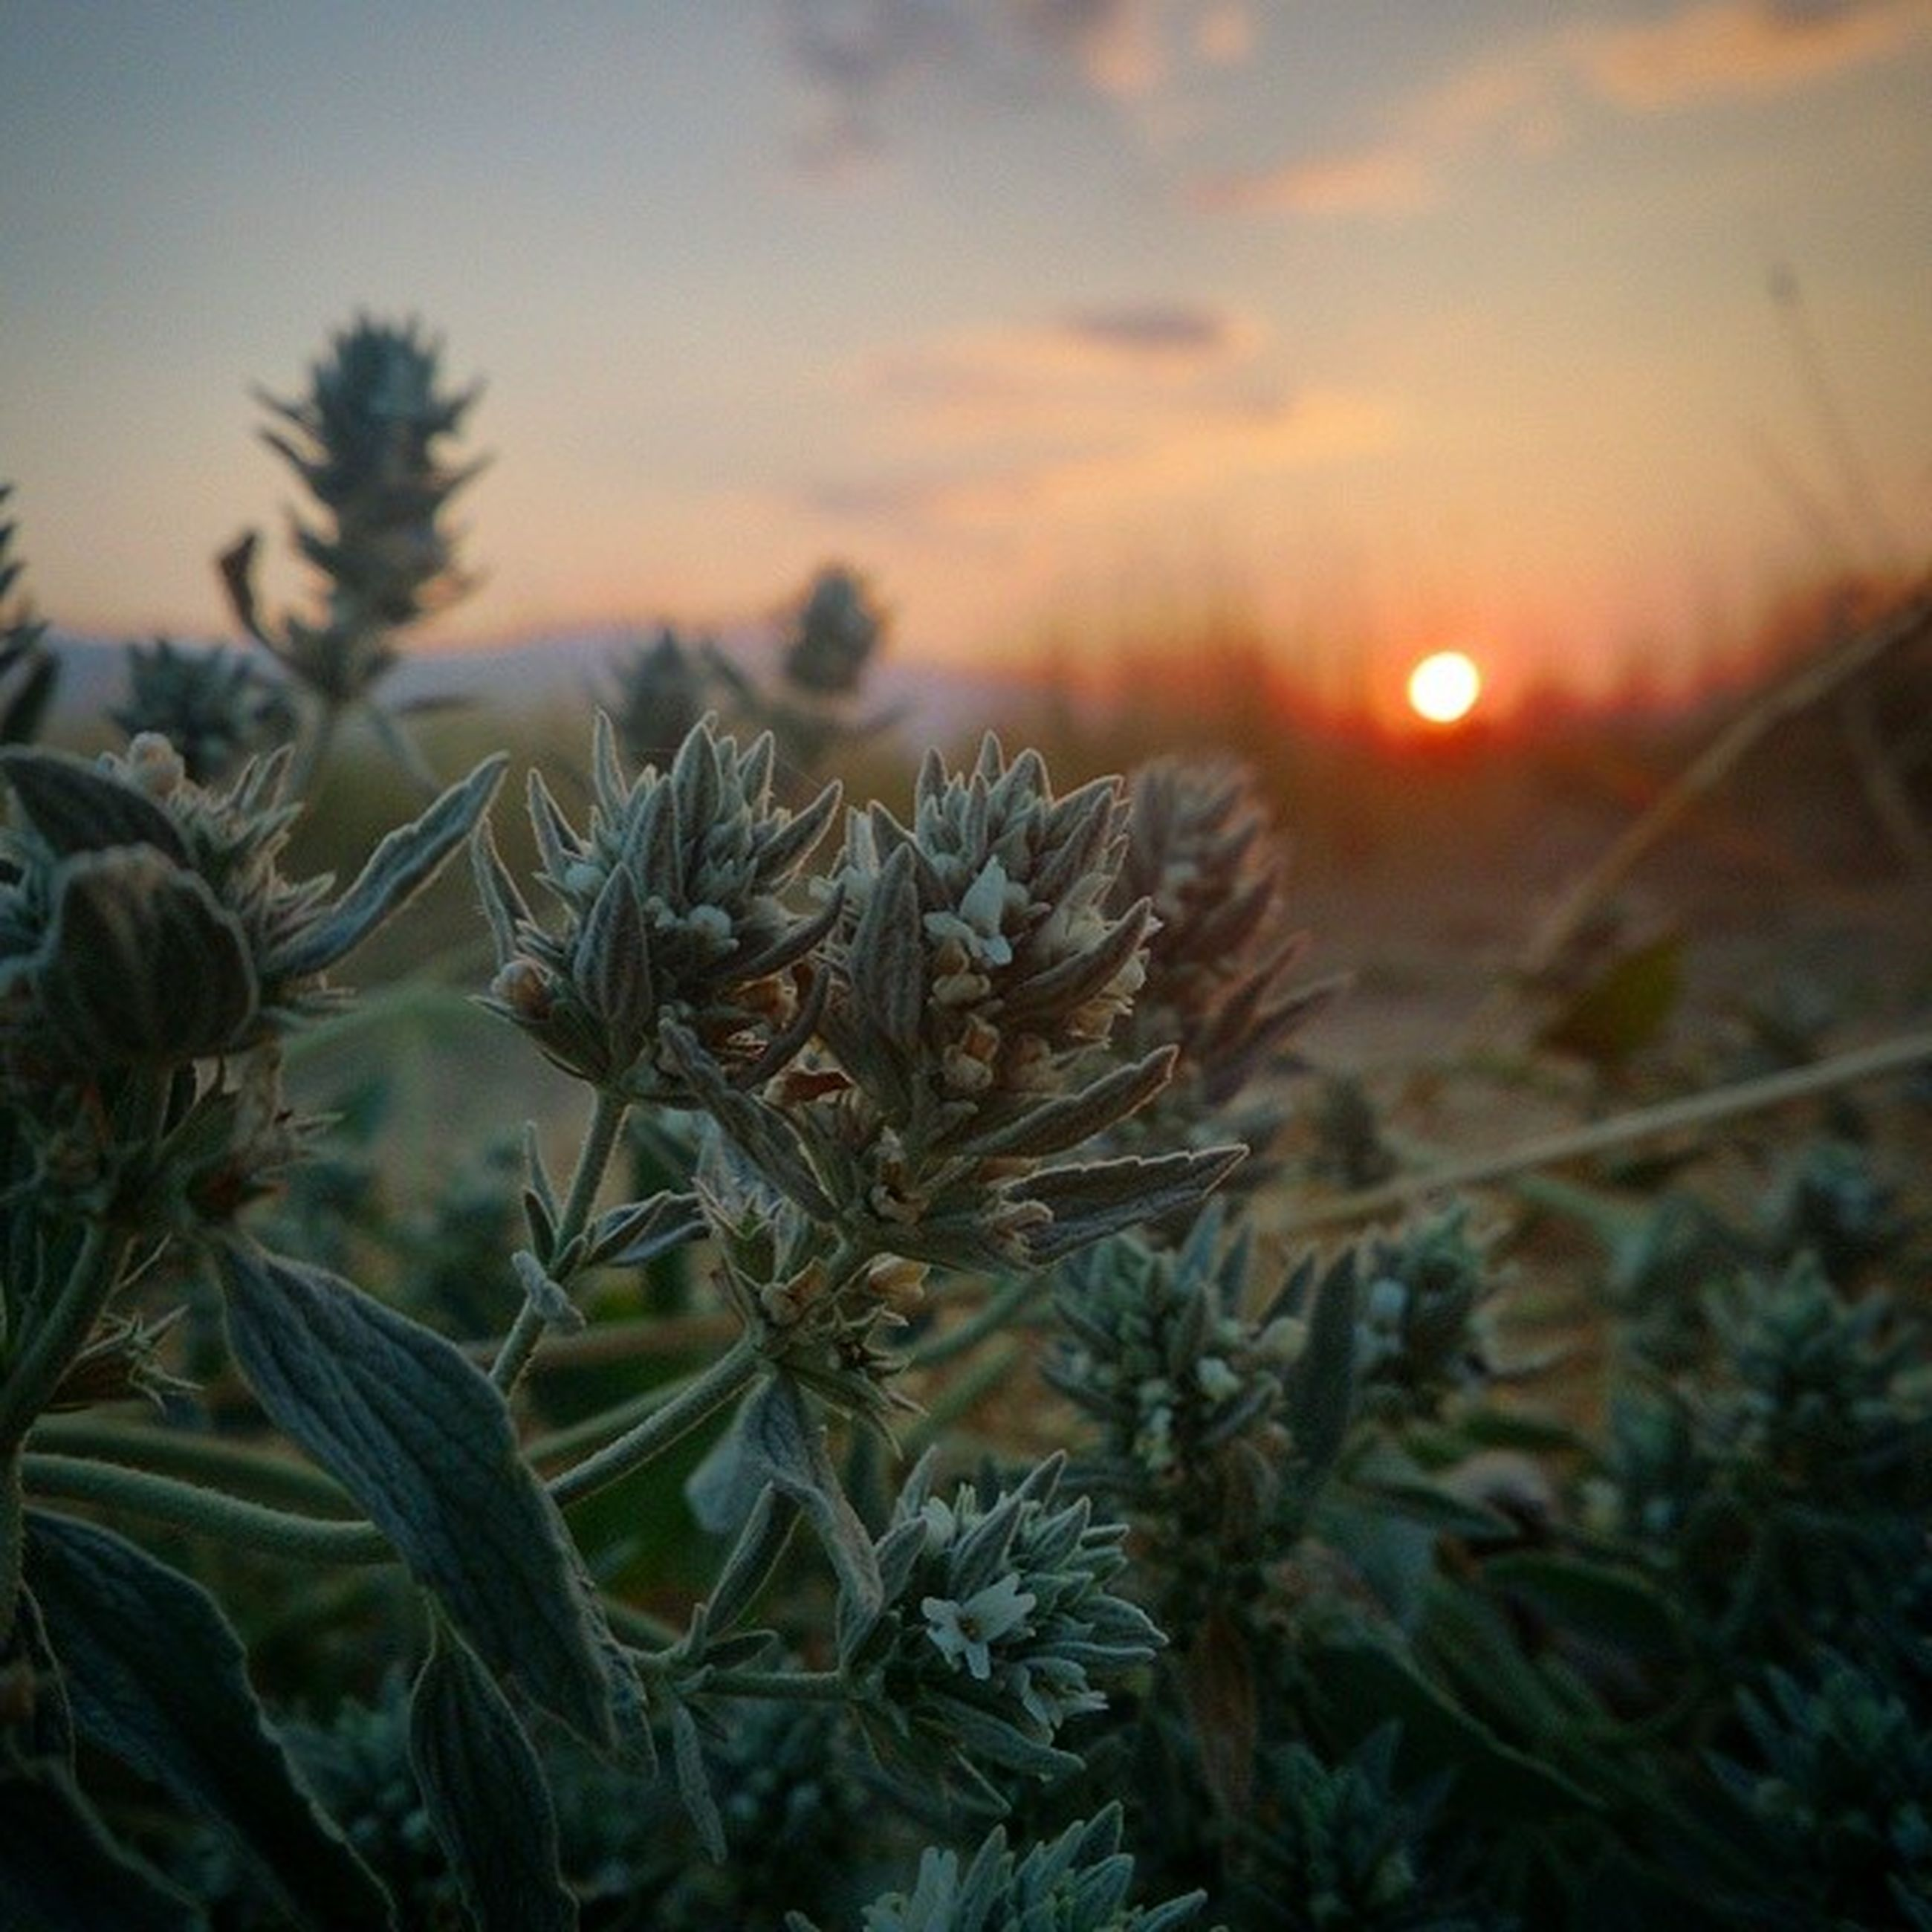 sunset, sky, growth, orange color, plant, nature, beauty in nature, sun, tranquility, focus on foreground, scenics, tranquil scene, close-up, field, sunlight, cloud - sky, outdoors, idyllic, stem, no people